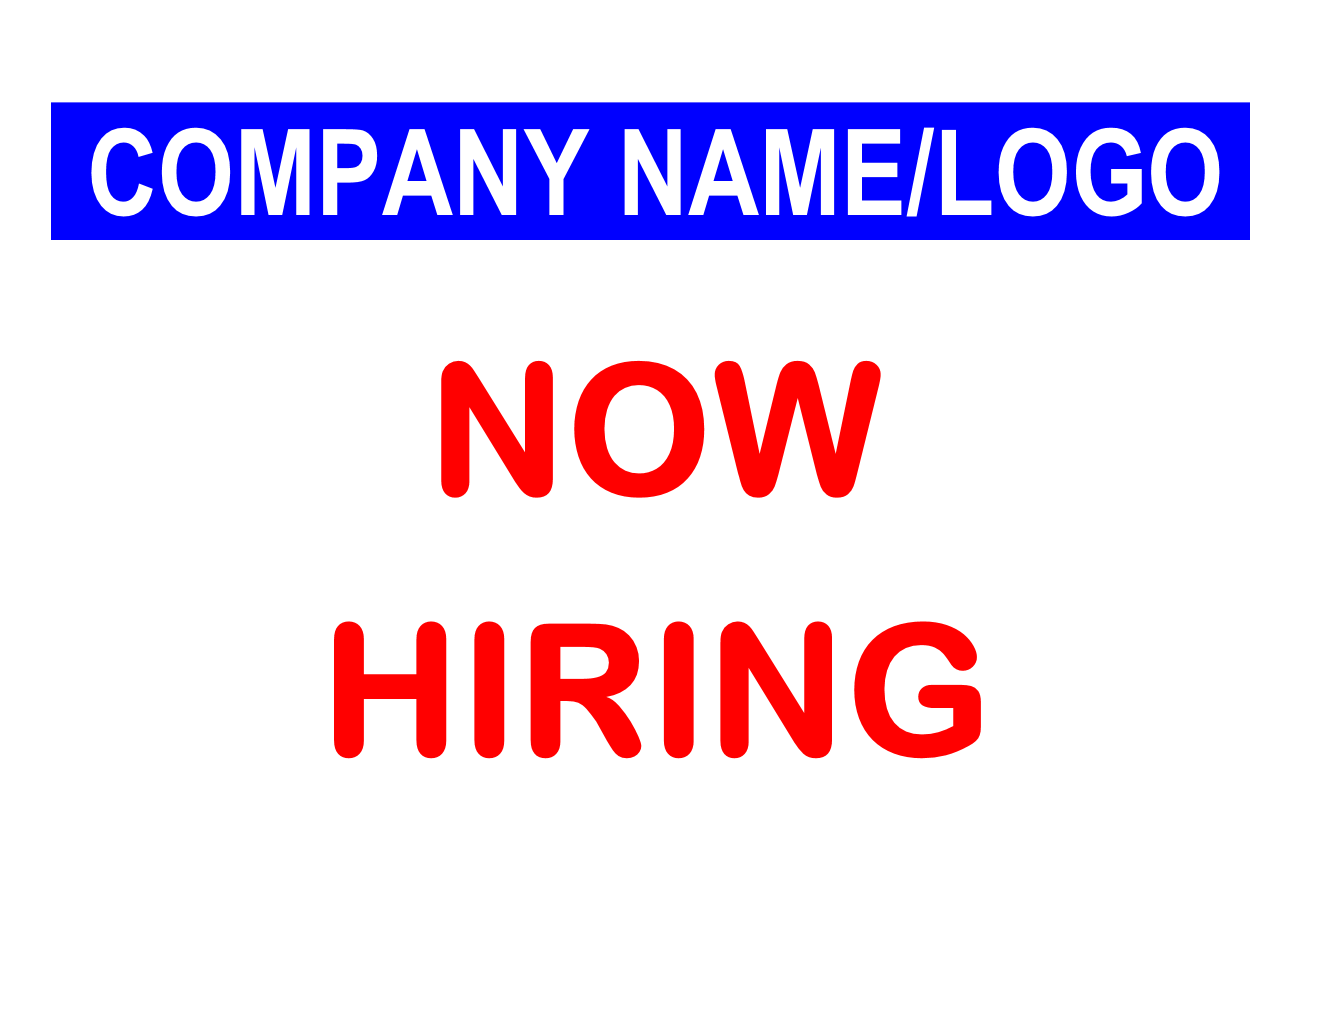 Now Hiring Template Free Charlotte Clergy Coalition